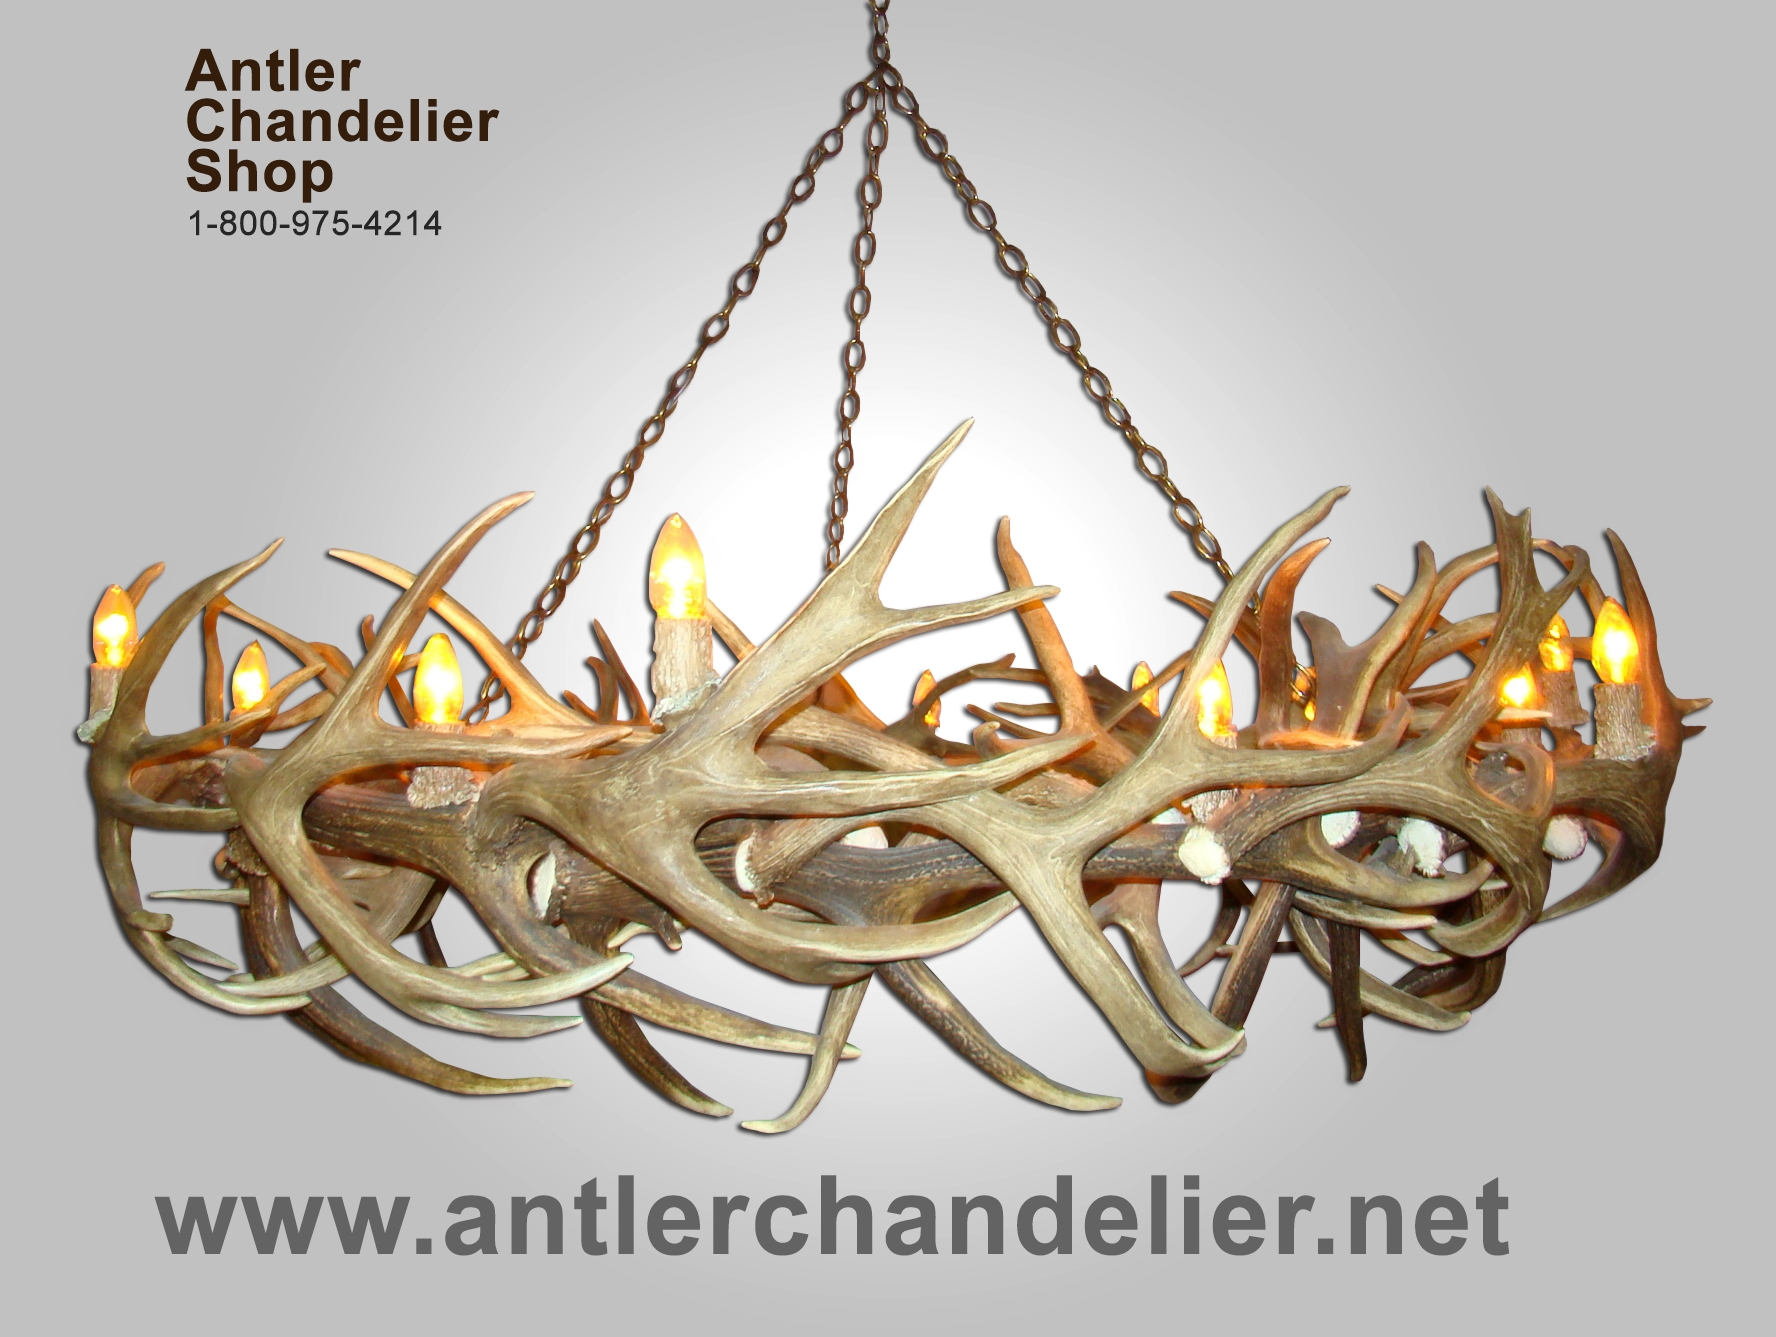 Deerantlerchandelier Xl Antler Chandeliers Antler Chandelier For Antler Chandeliers And Lighting (Image 7 of 15)